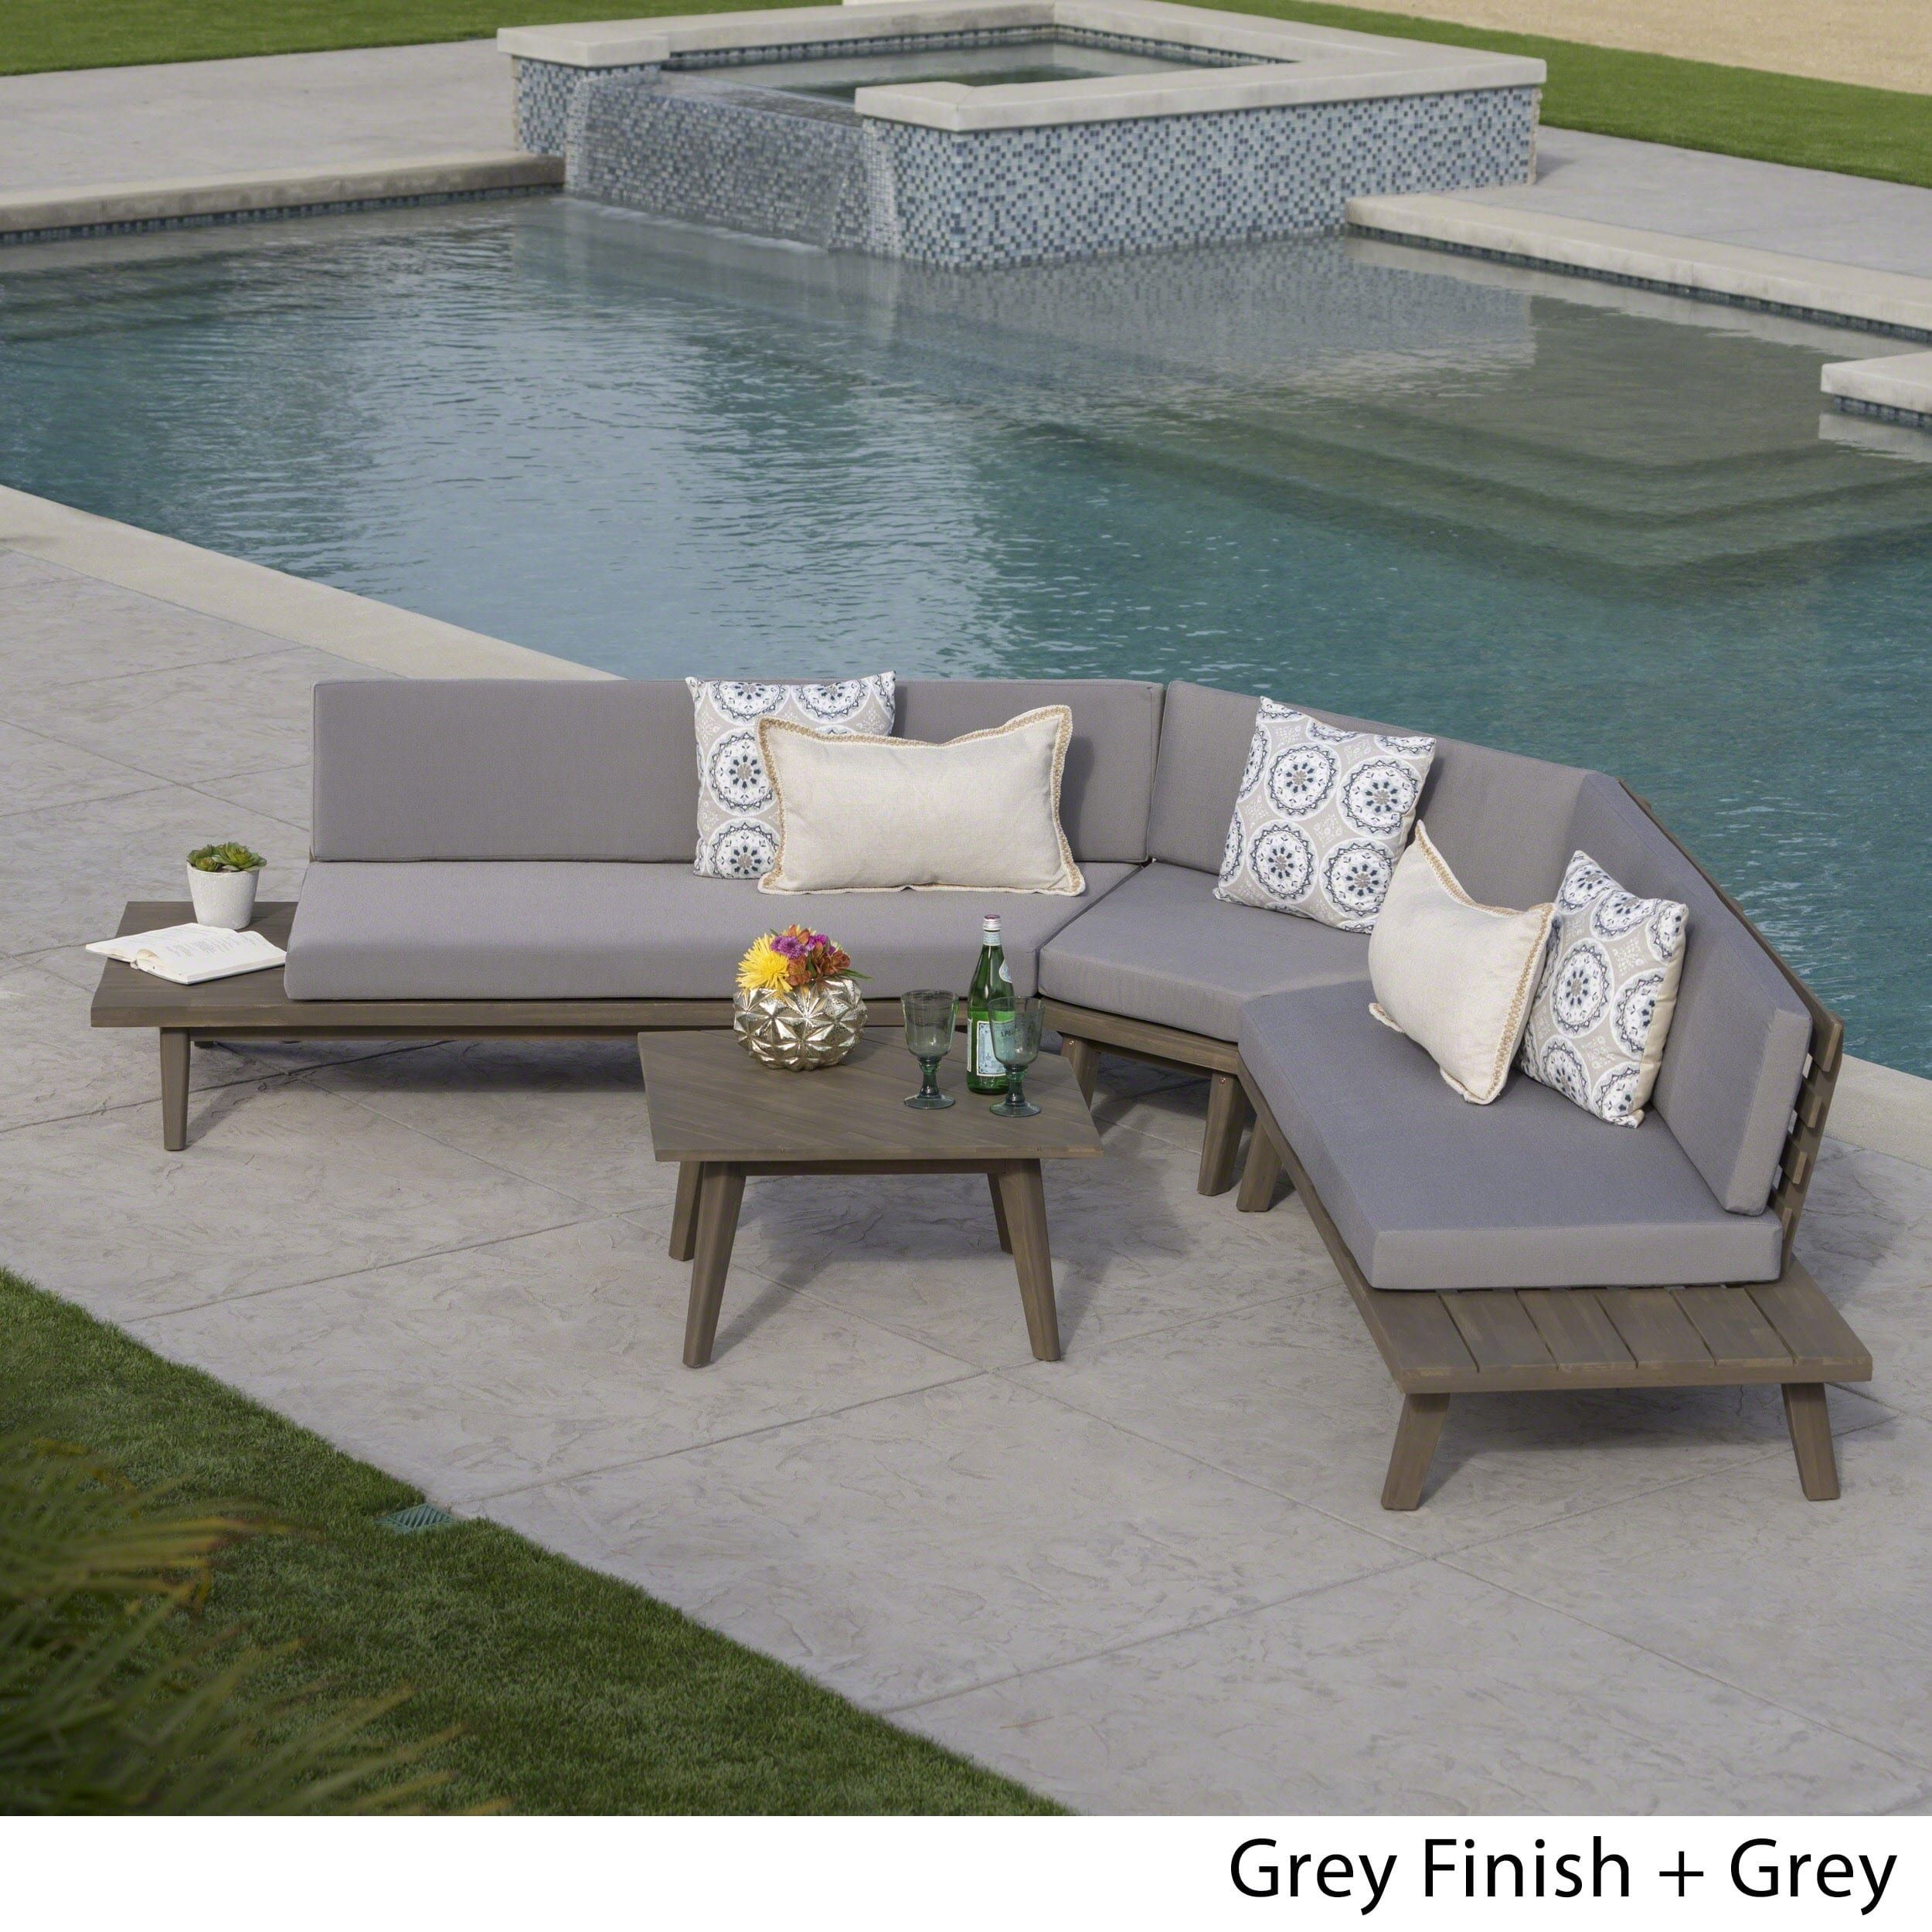 Hillcrest Outdoor 4 Piece V Shaped Wood Sectional Sofa Set With Cushion By Christopher Knight Home Grey Finish Size 5 Sets Patio Furniture